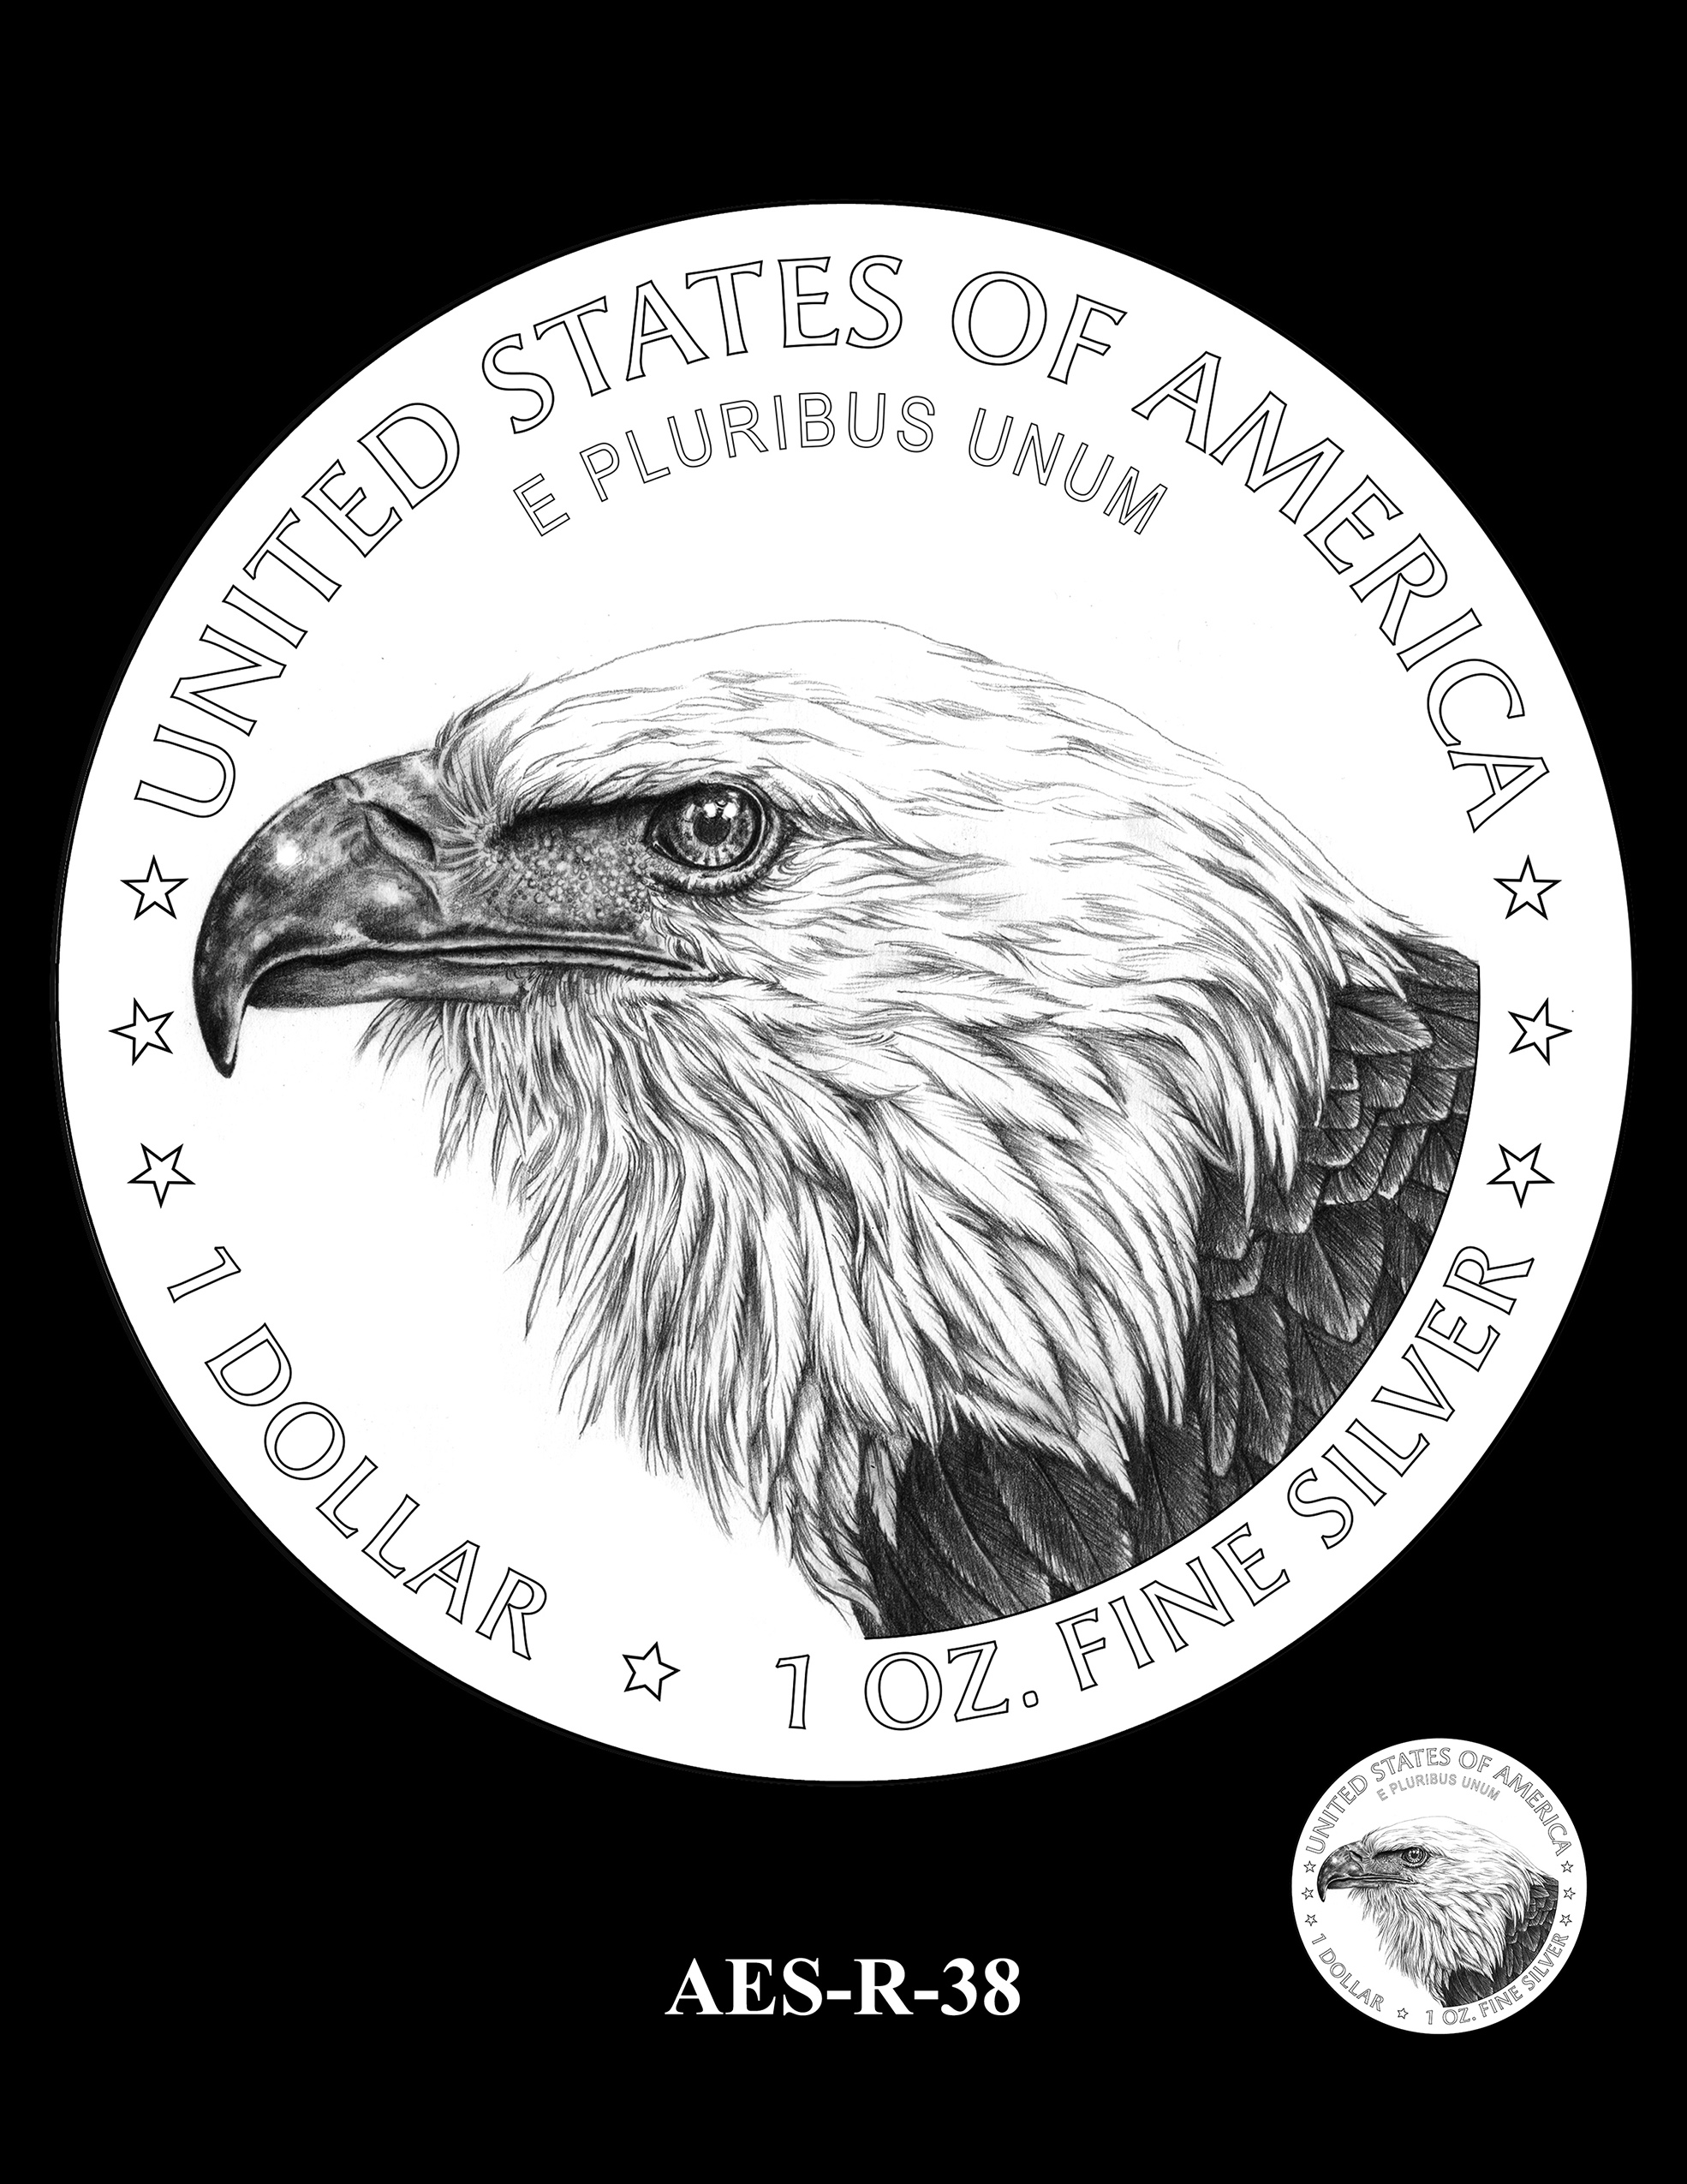 AES-R-38 -- American Eagle Proof and Bullion Silver Coin - Reverse